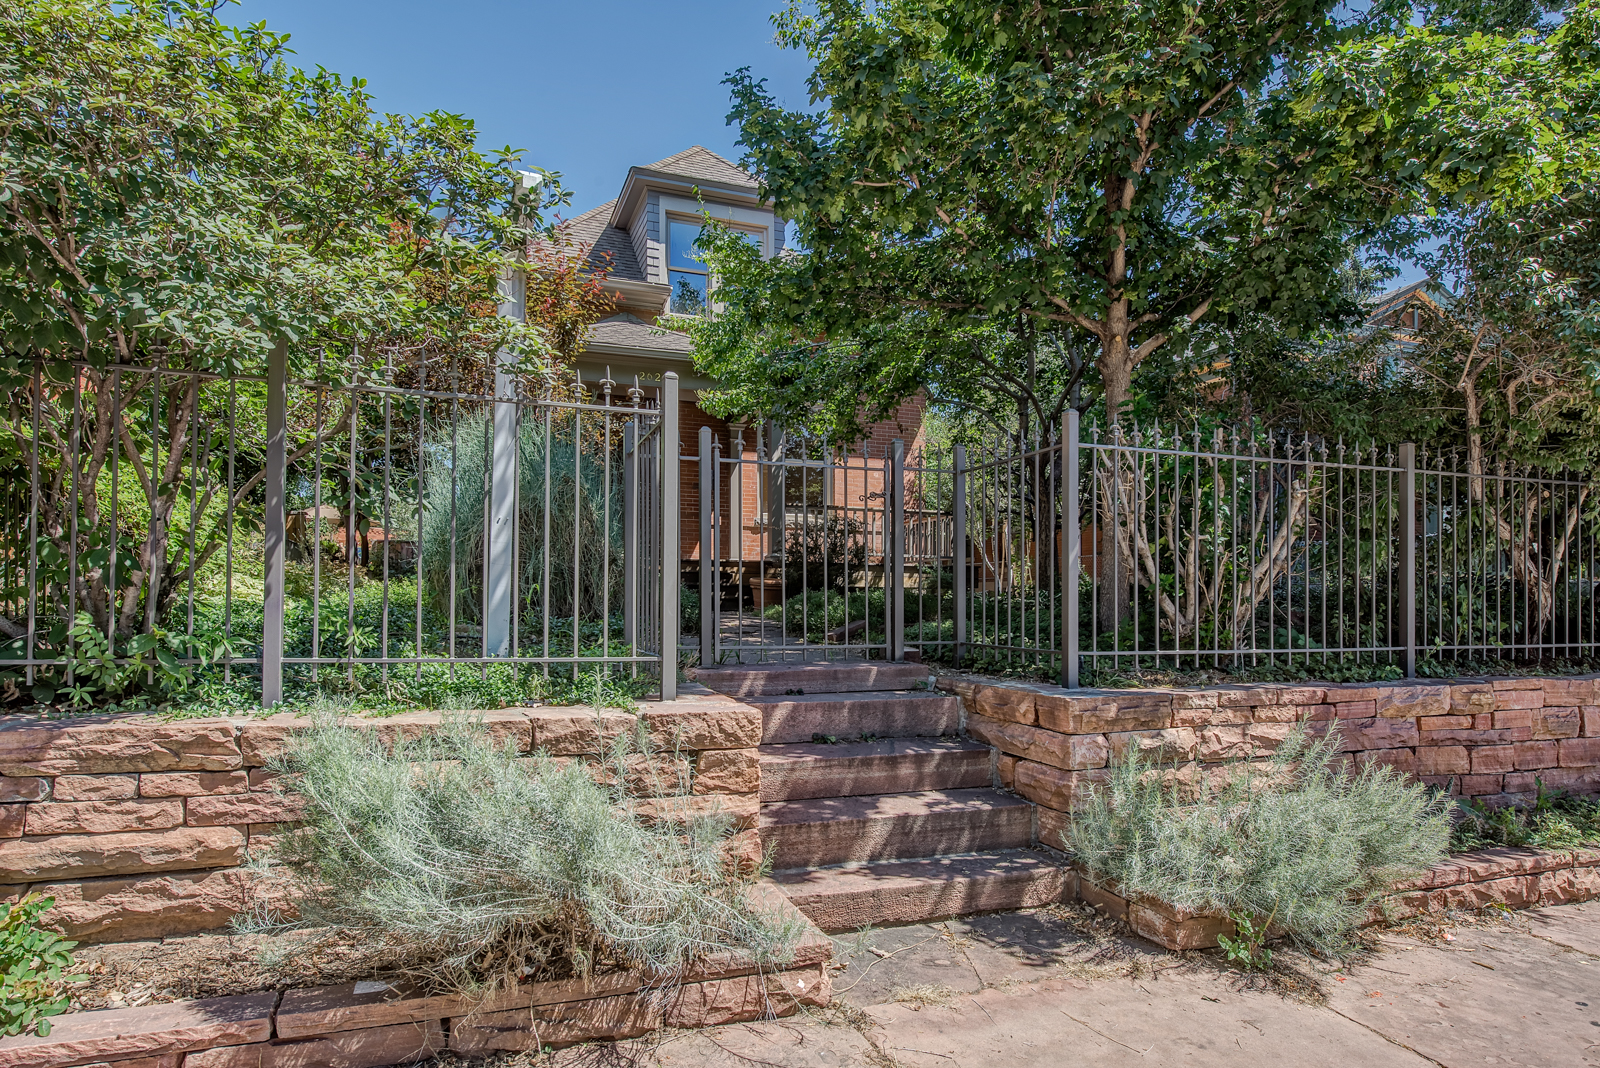 Single Family Home for Sale at Rock Star Location! 2623 West 32nd Avenue Denver, Colorado 80211 United States